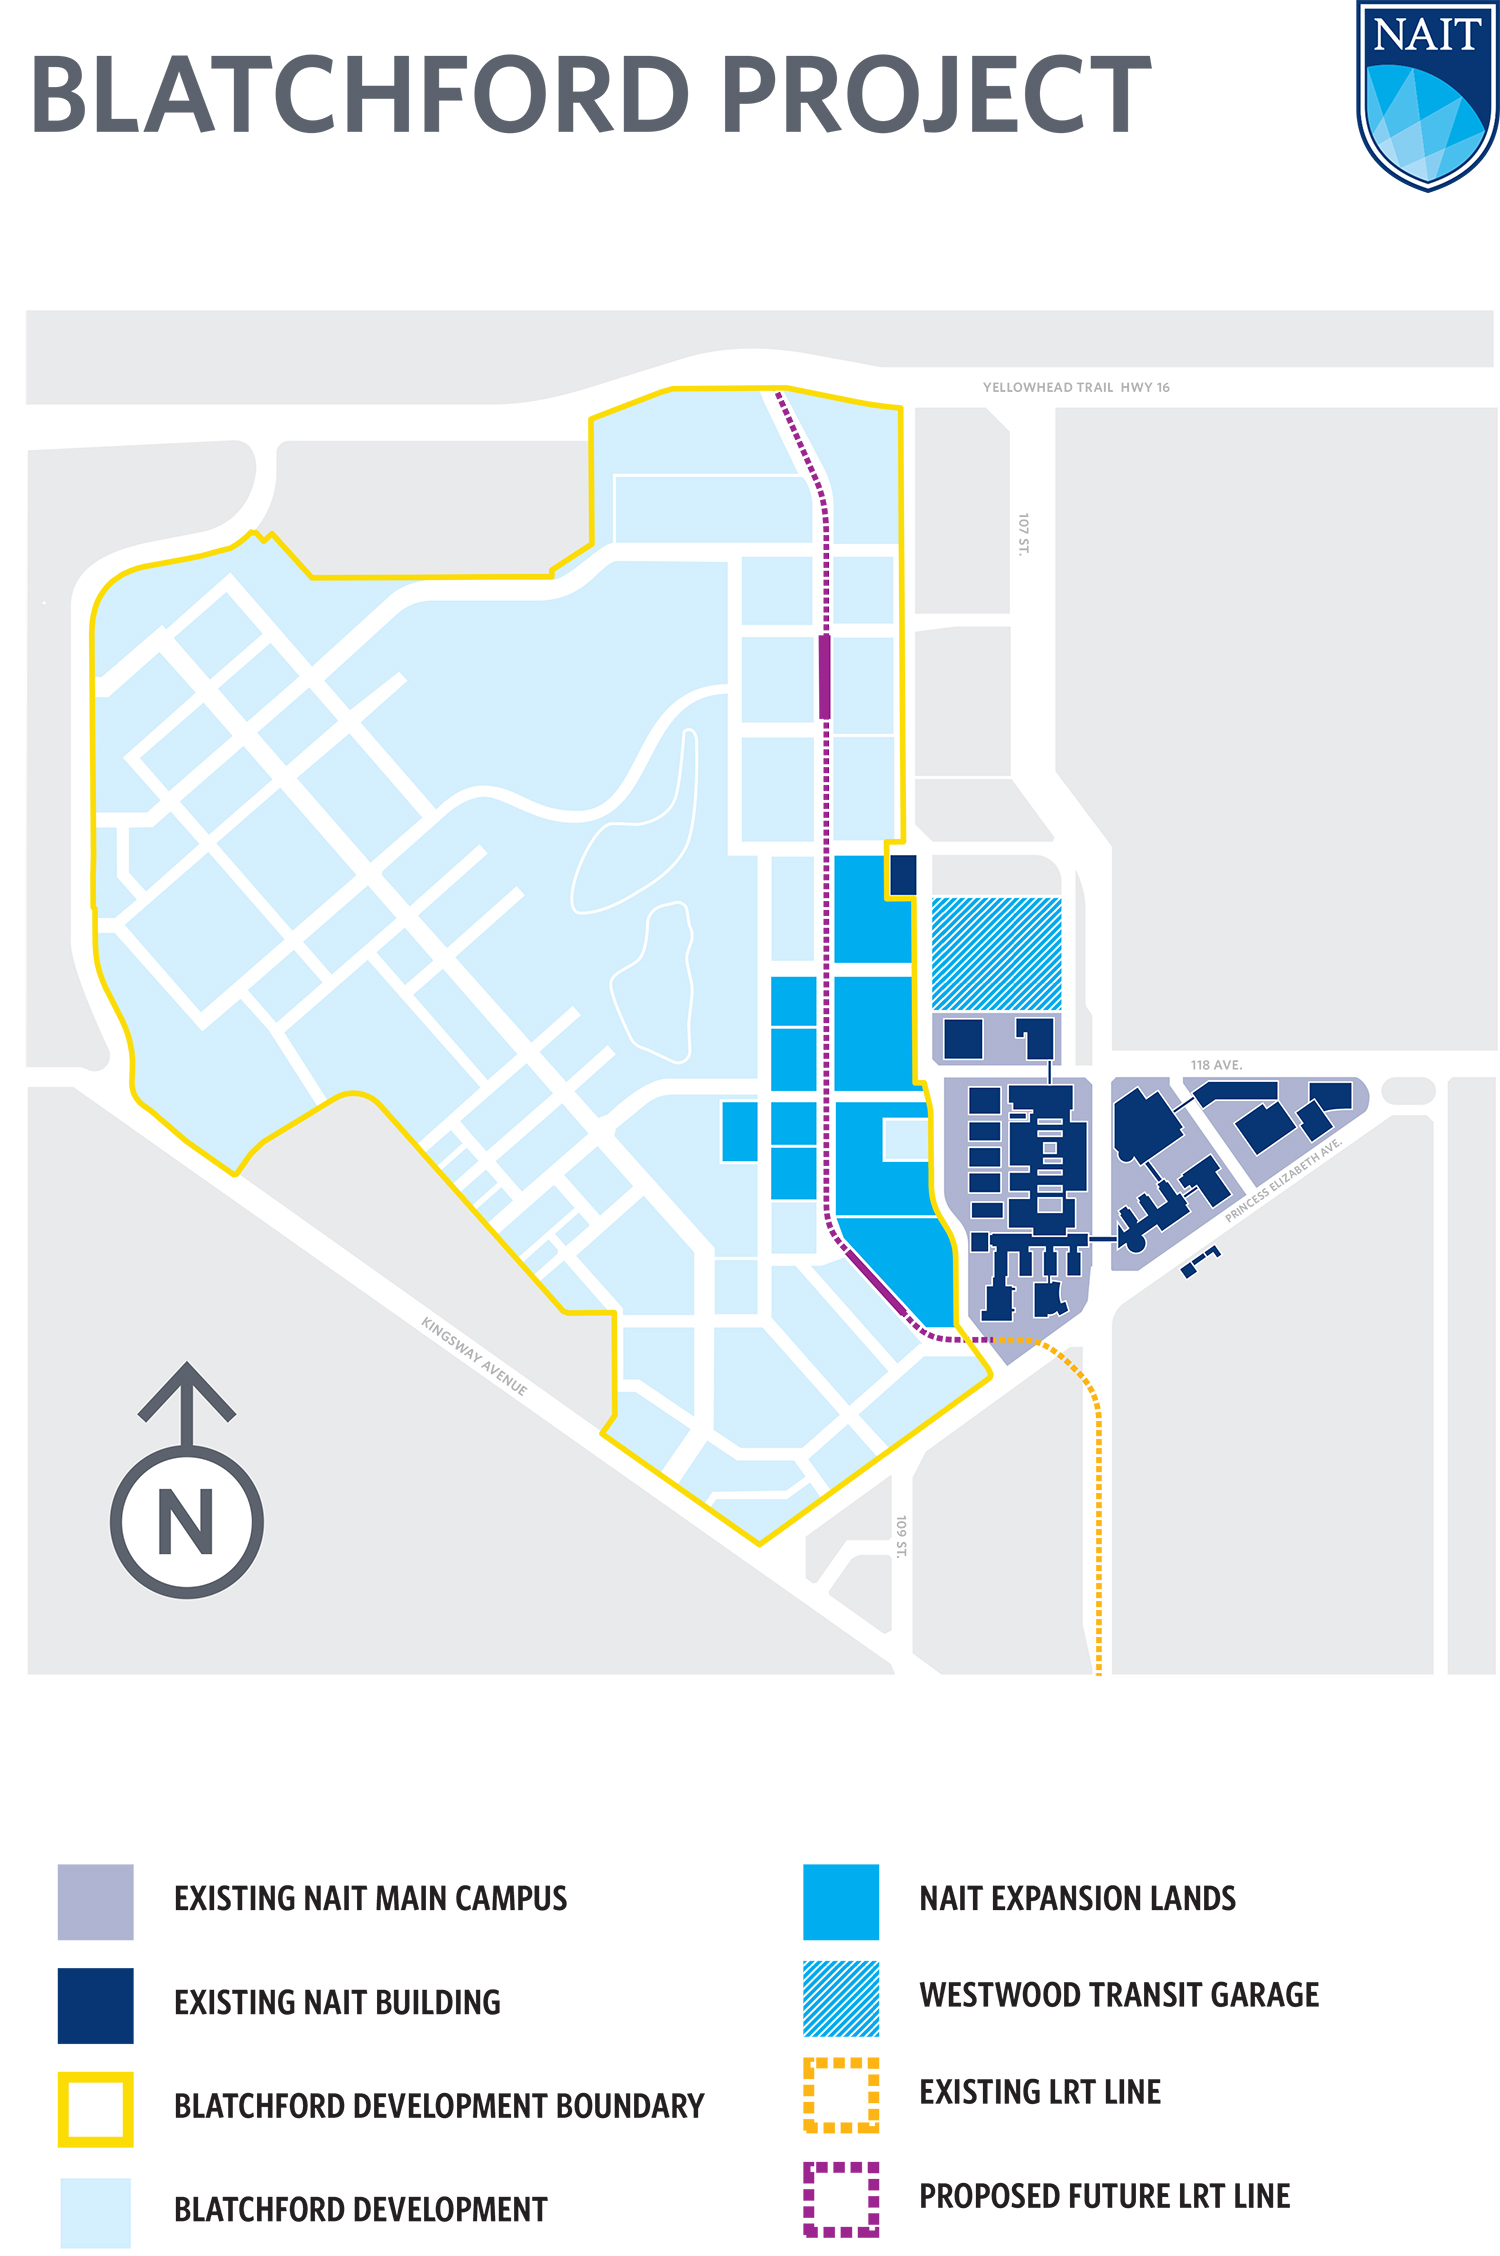 Nait Campus Map NAIT acquires Blatchford land for campus growth and consolidation